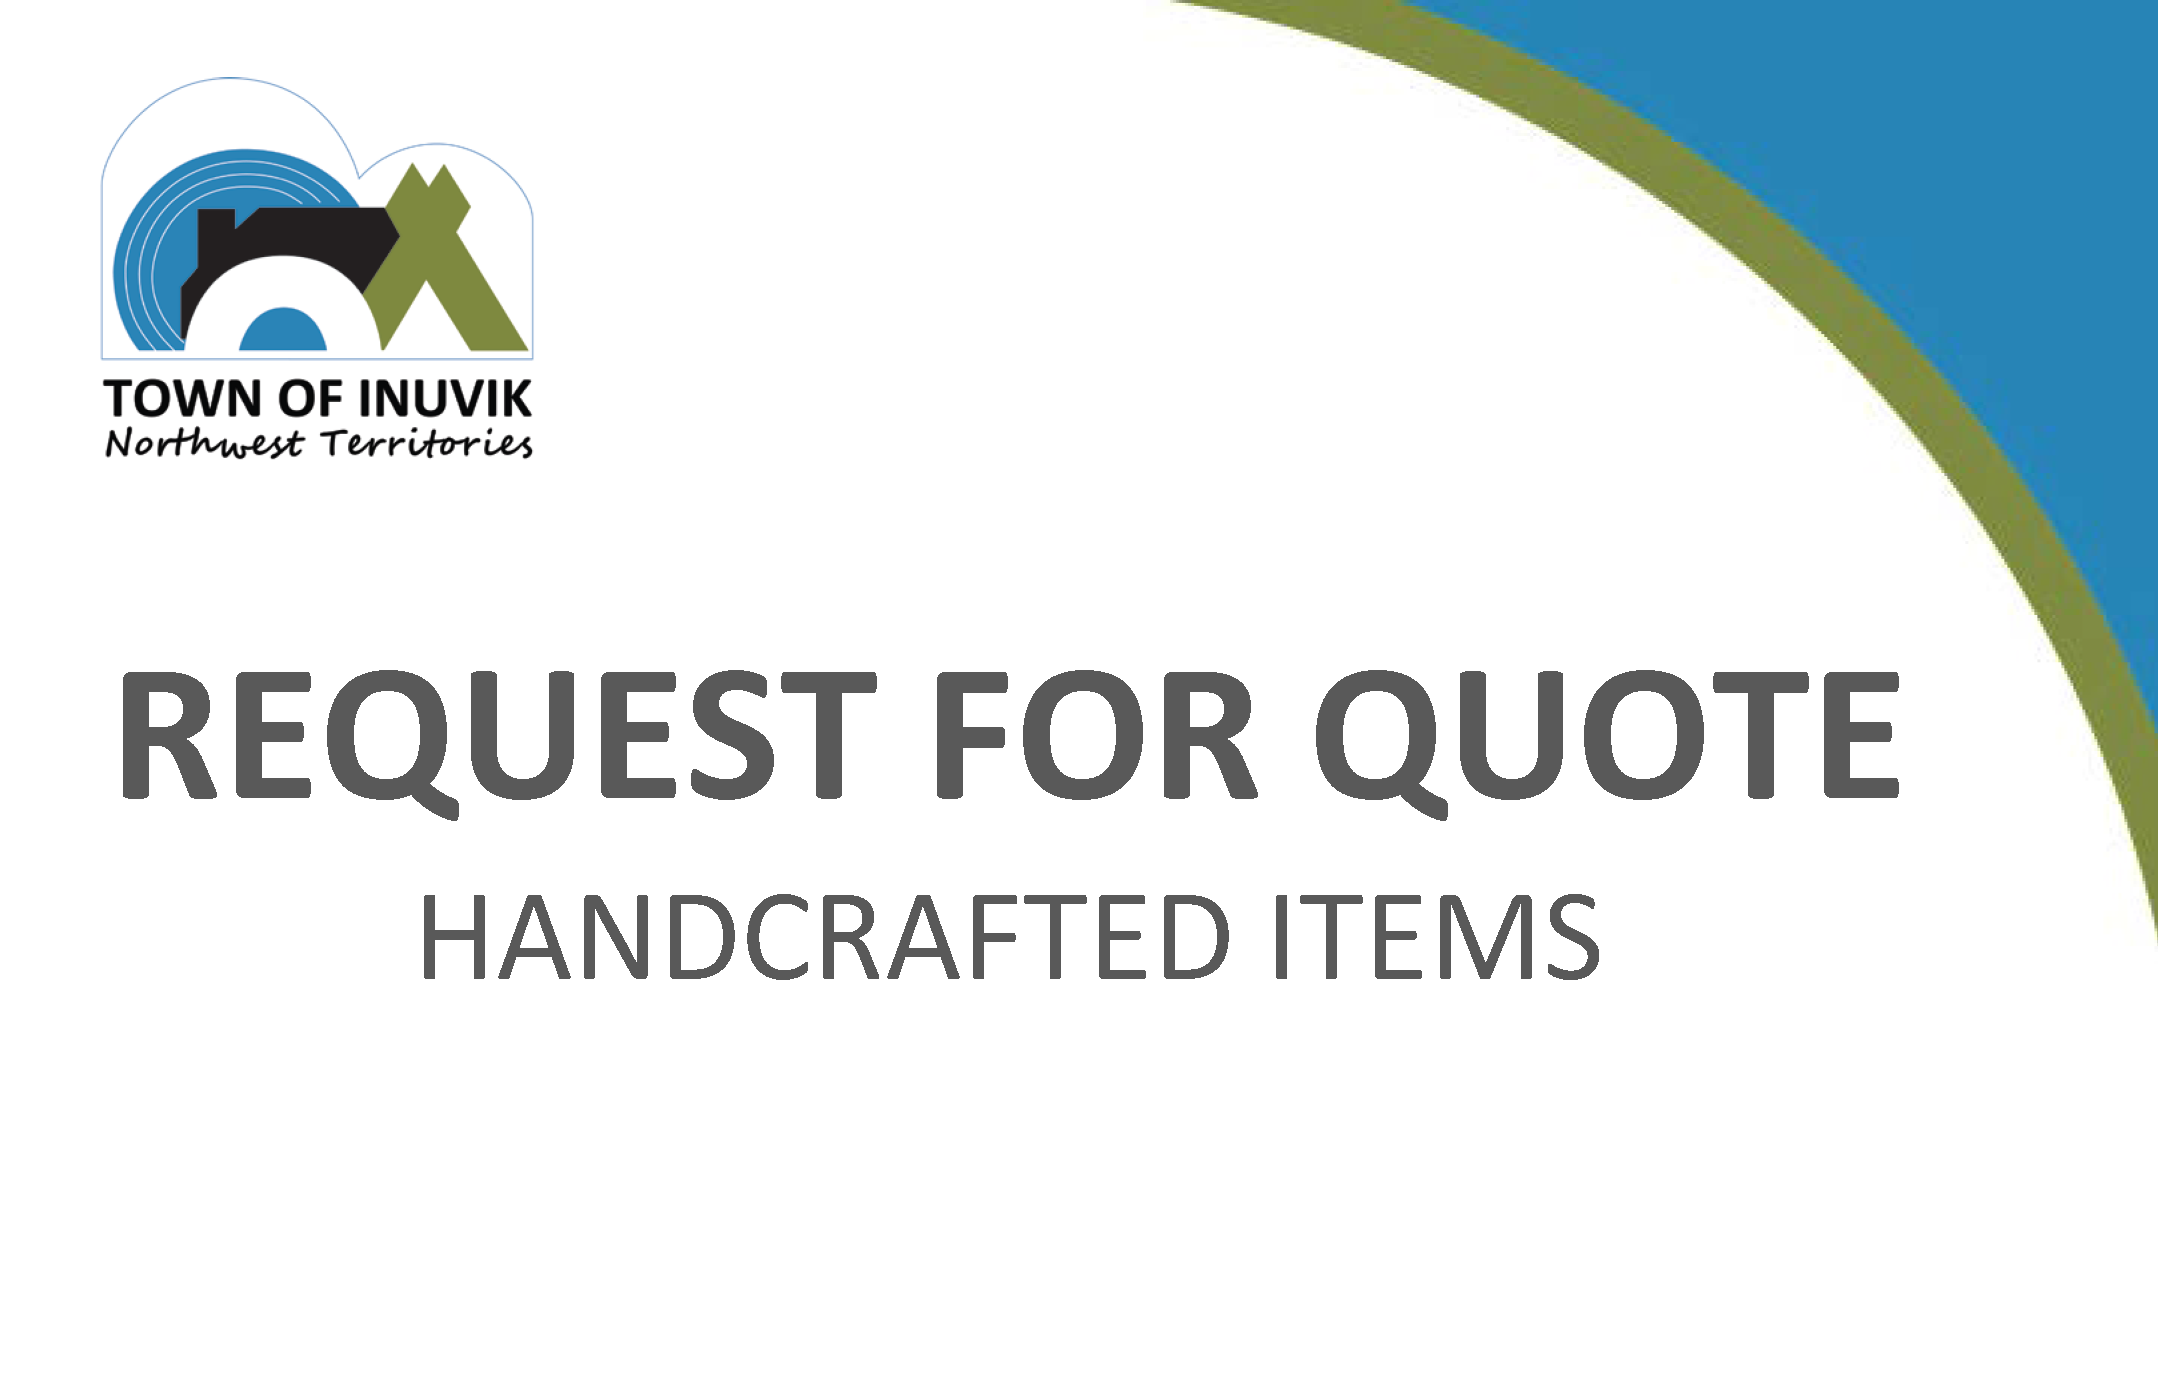 RFQ - HANDCRAFTED ITEMS